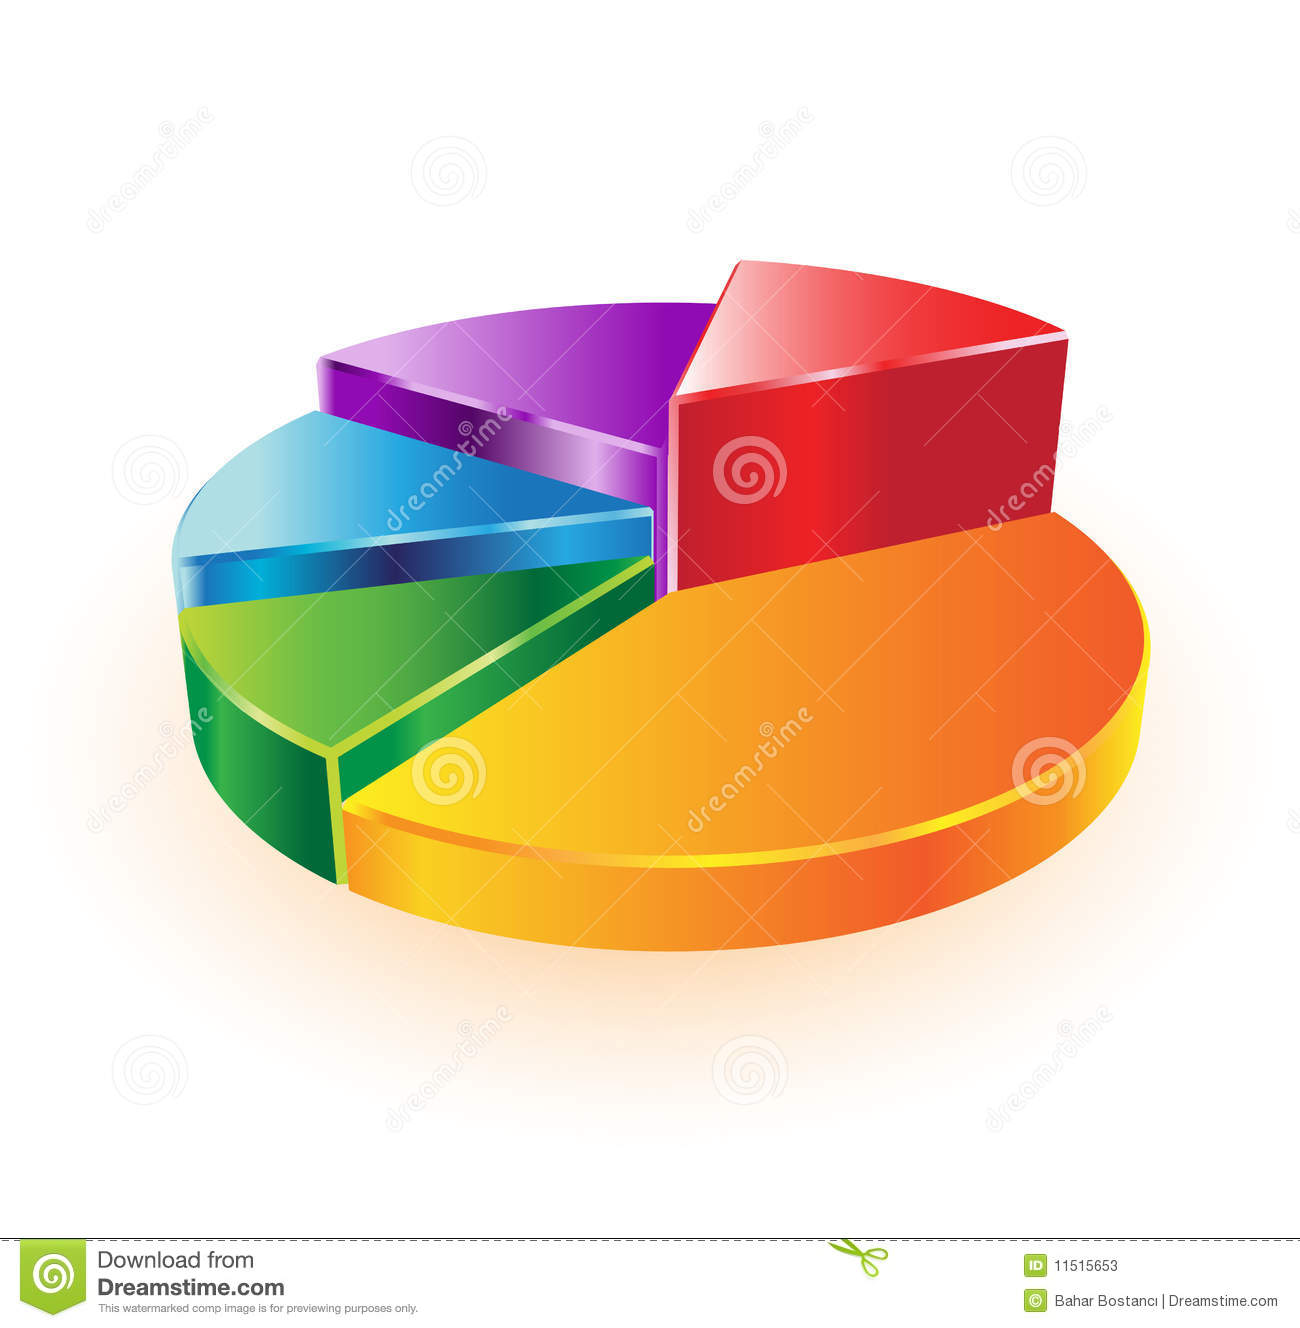 3D Pie Chart Stock Photos - Image: 11515653